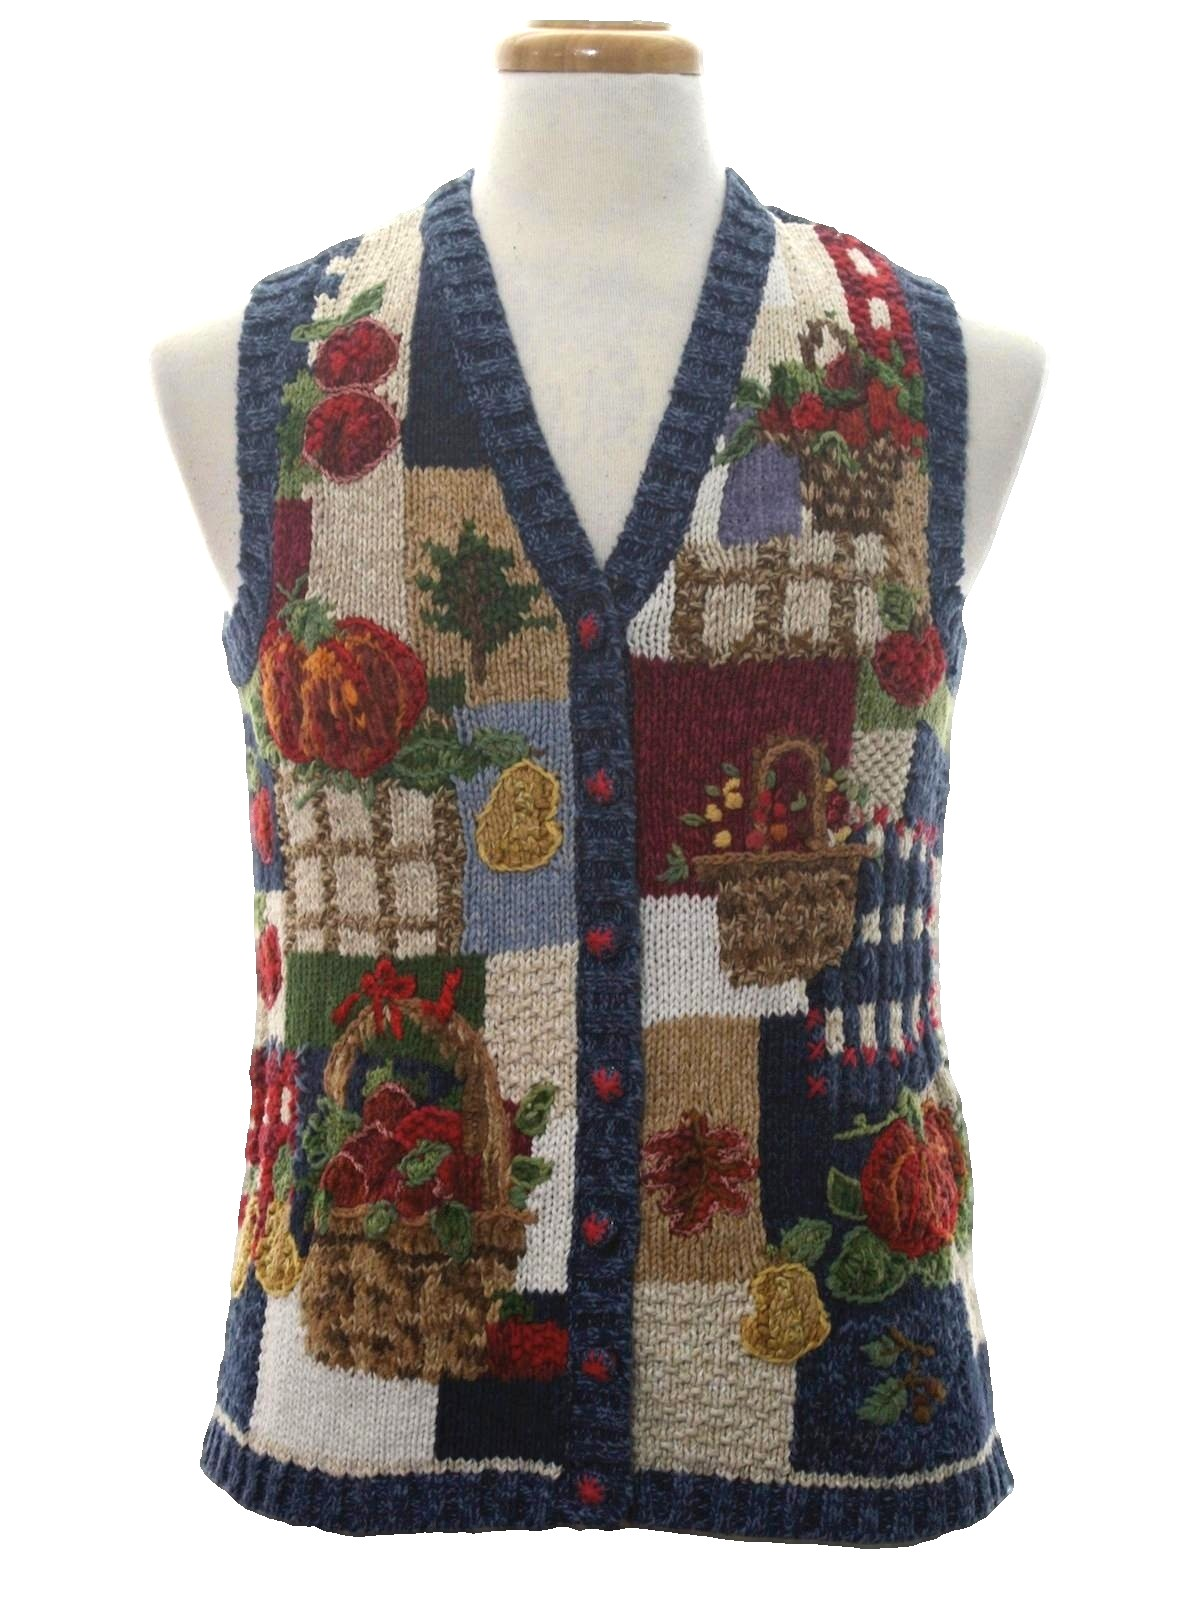 Ugly Before Christmas Thanksgiving Sweater Vest Heriloom